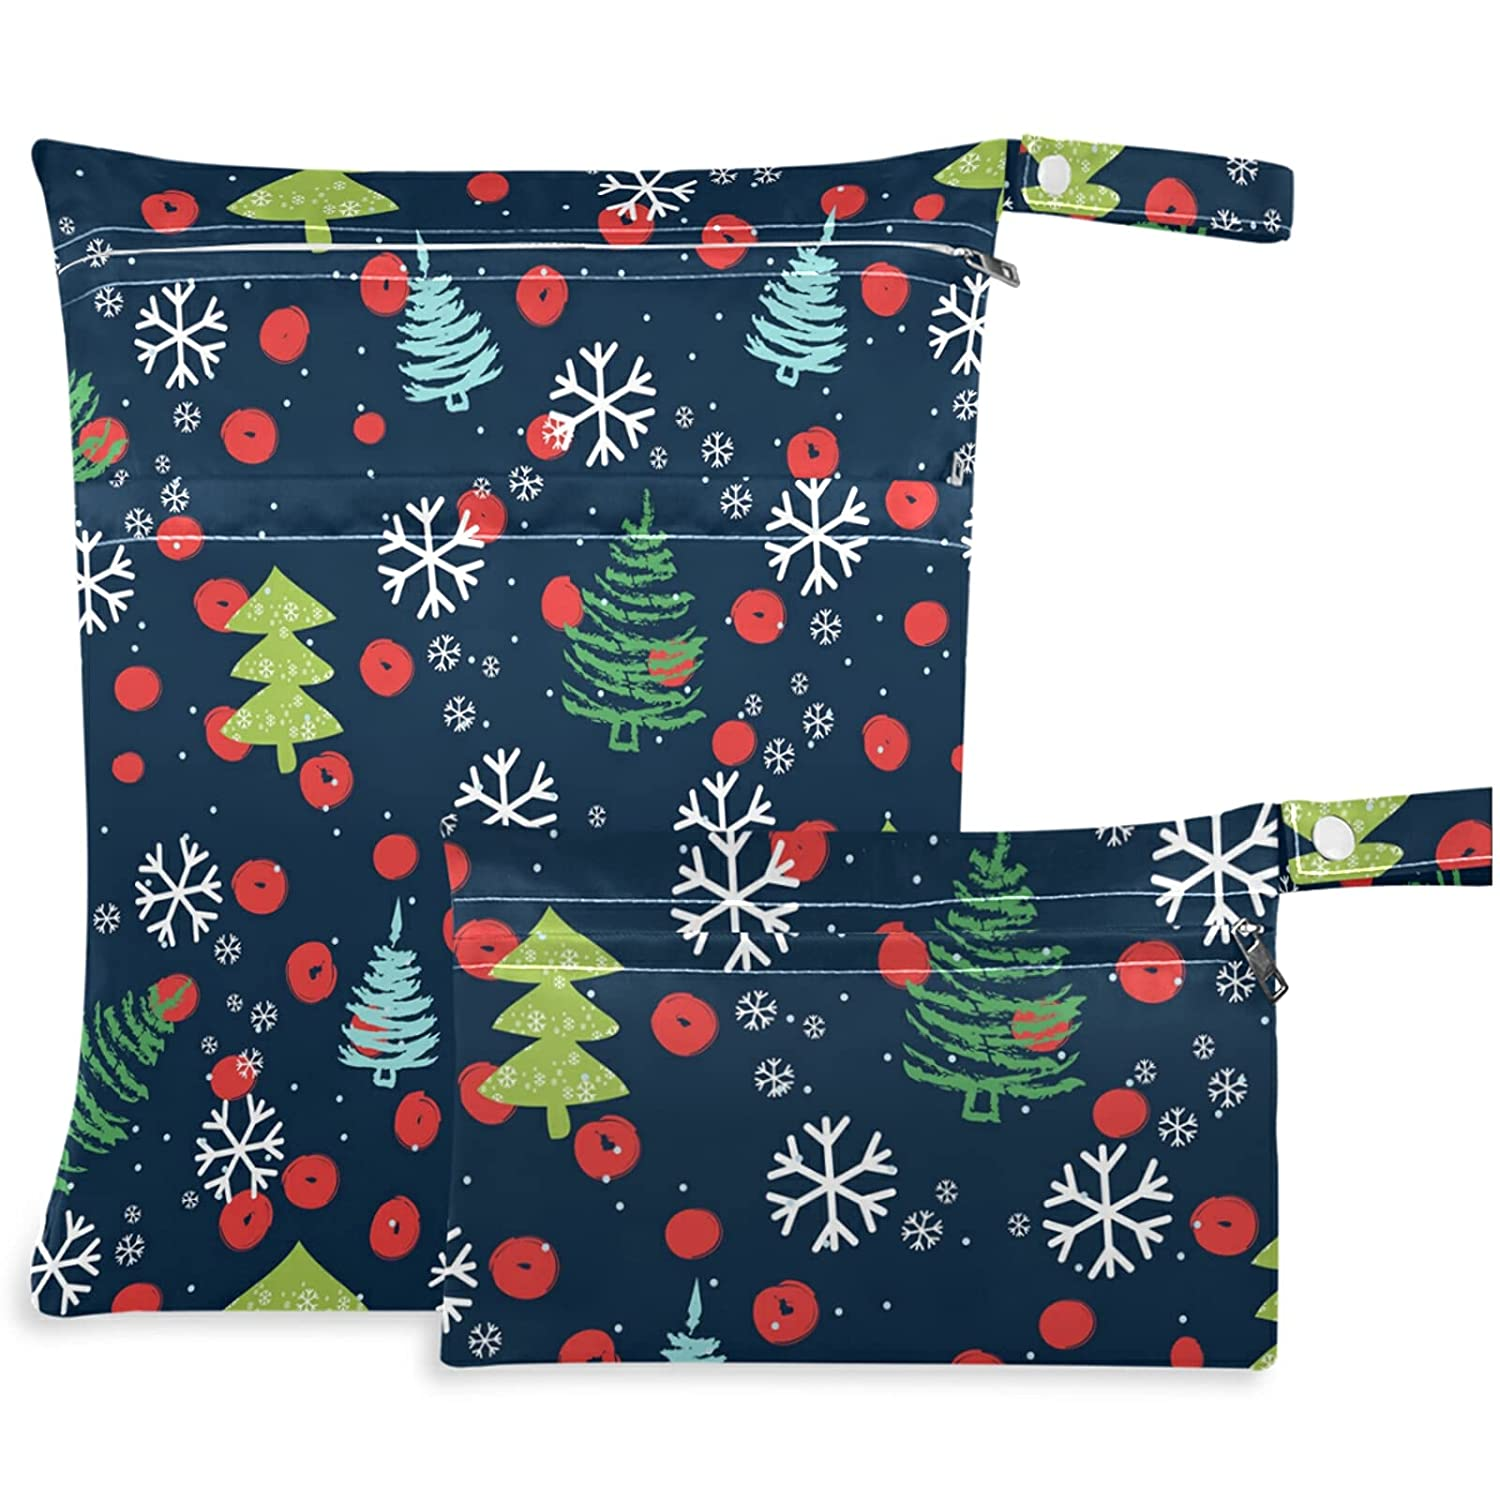 visesunny 2Pcs Wet Bag with Zippered Ranking TOP19 Pockets Tree and Christmas NEW before selling